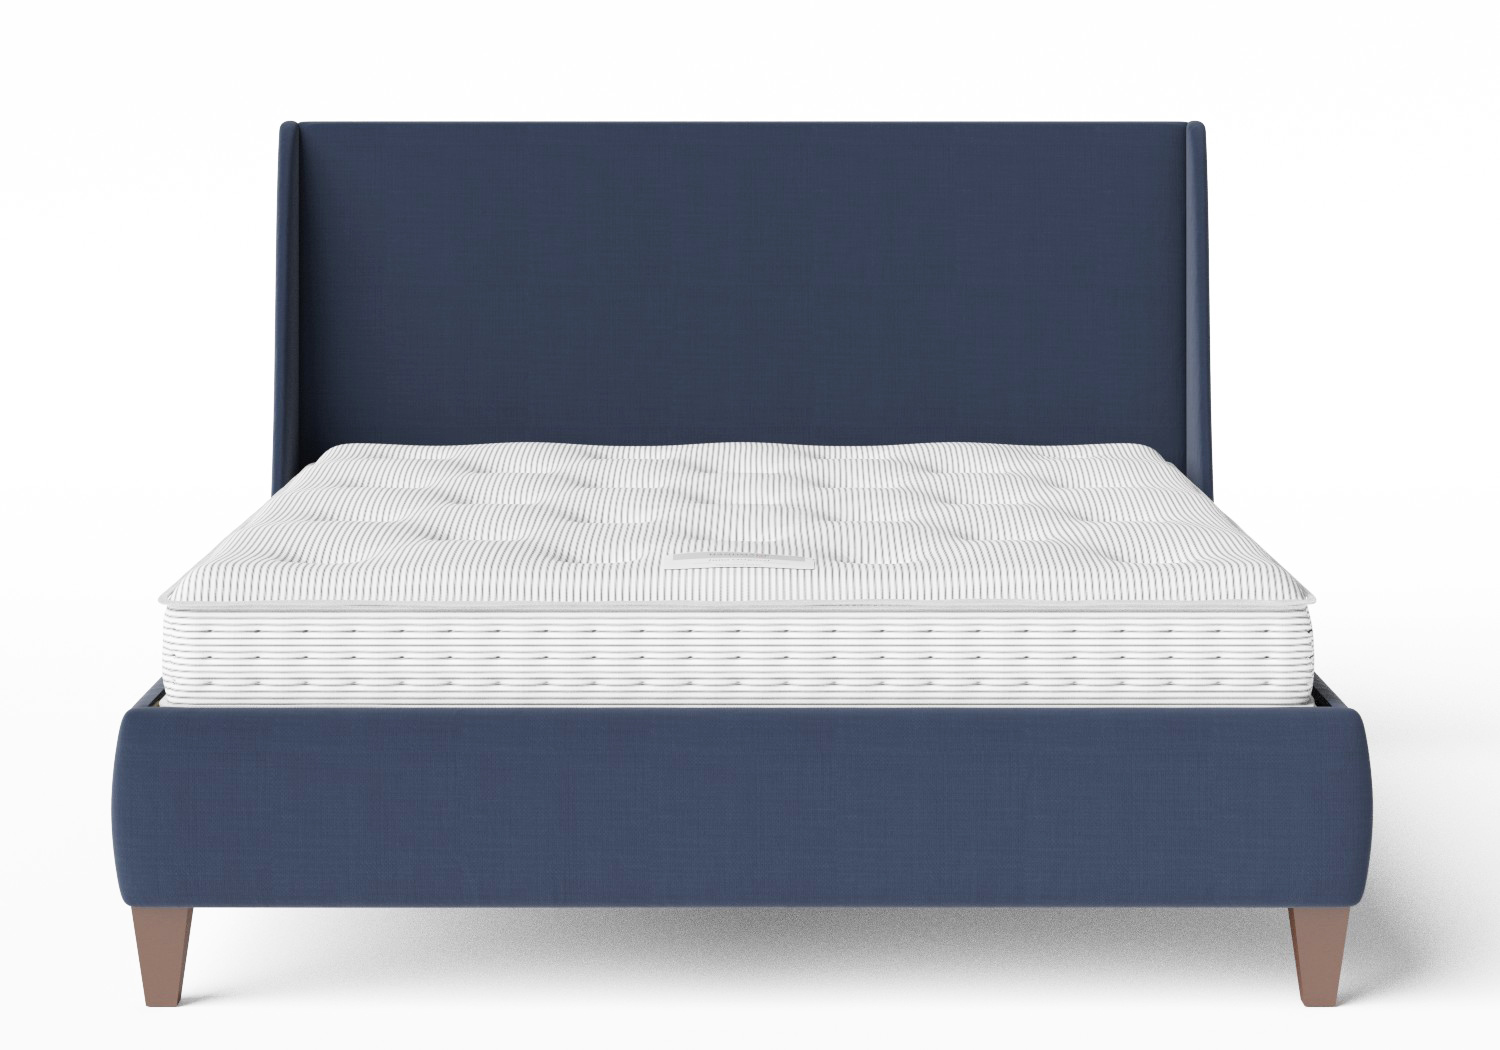 Sunderland Upholstered bed in Navy fabric shown with Juno 1 mattress